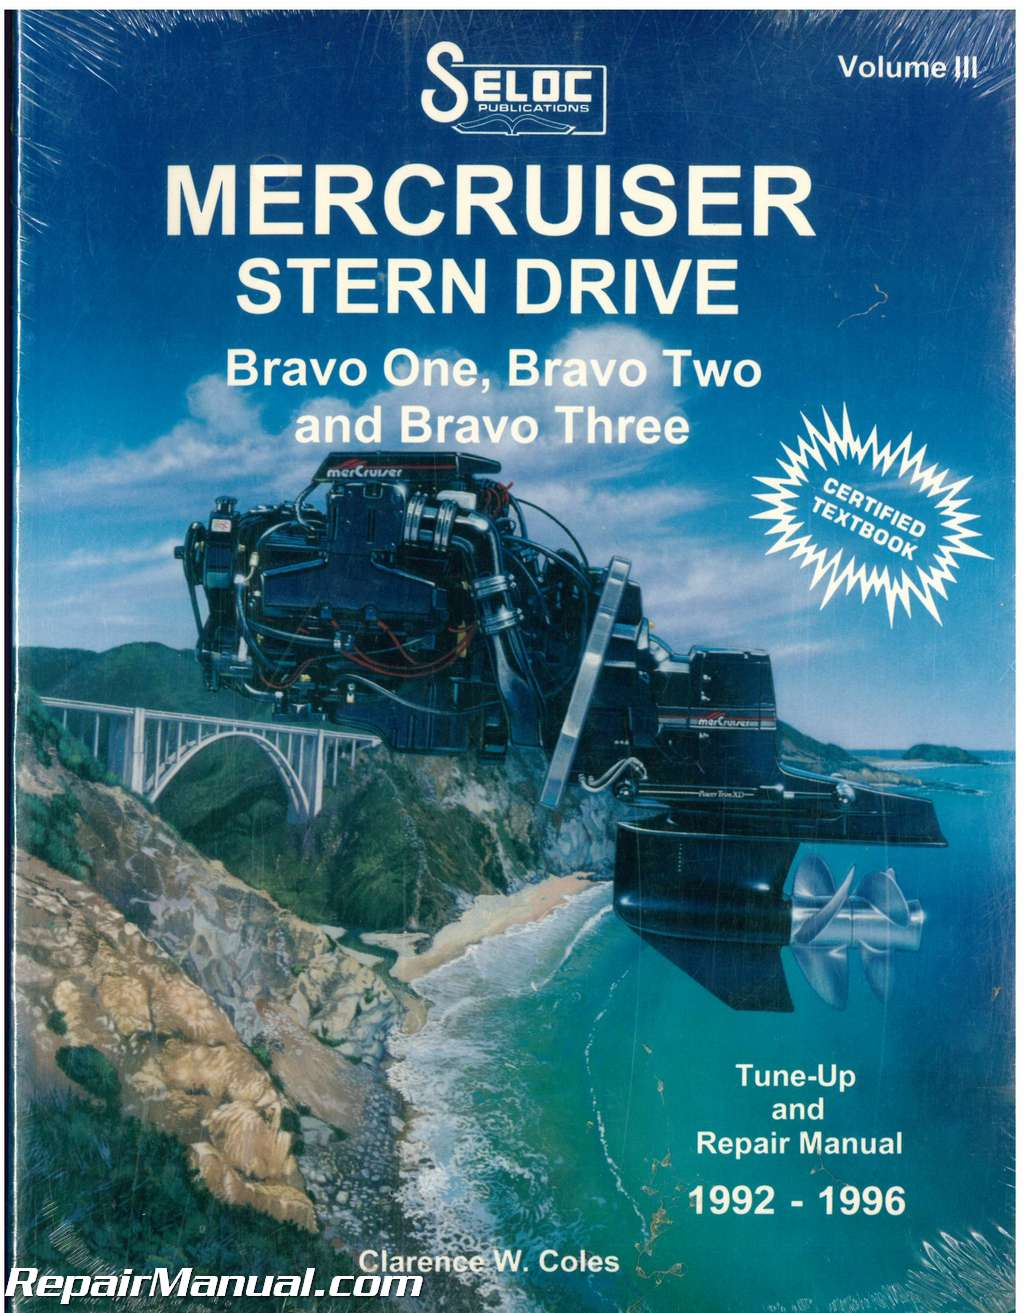 USED Seloc Mercruiser Stern Drive 1992-1996 Bravo One Two Three Boat Engine  Repair Manual